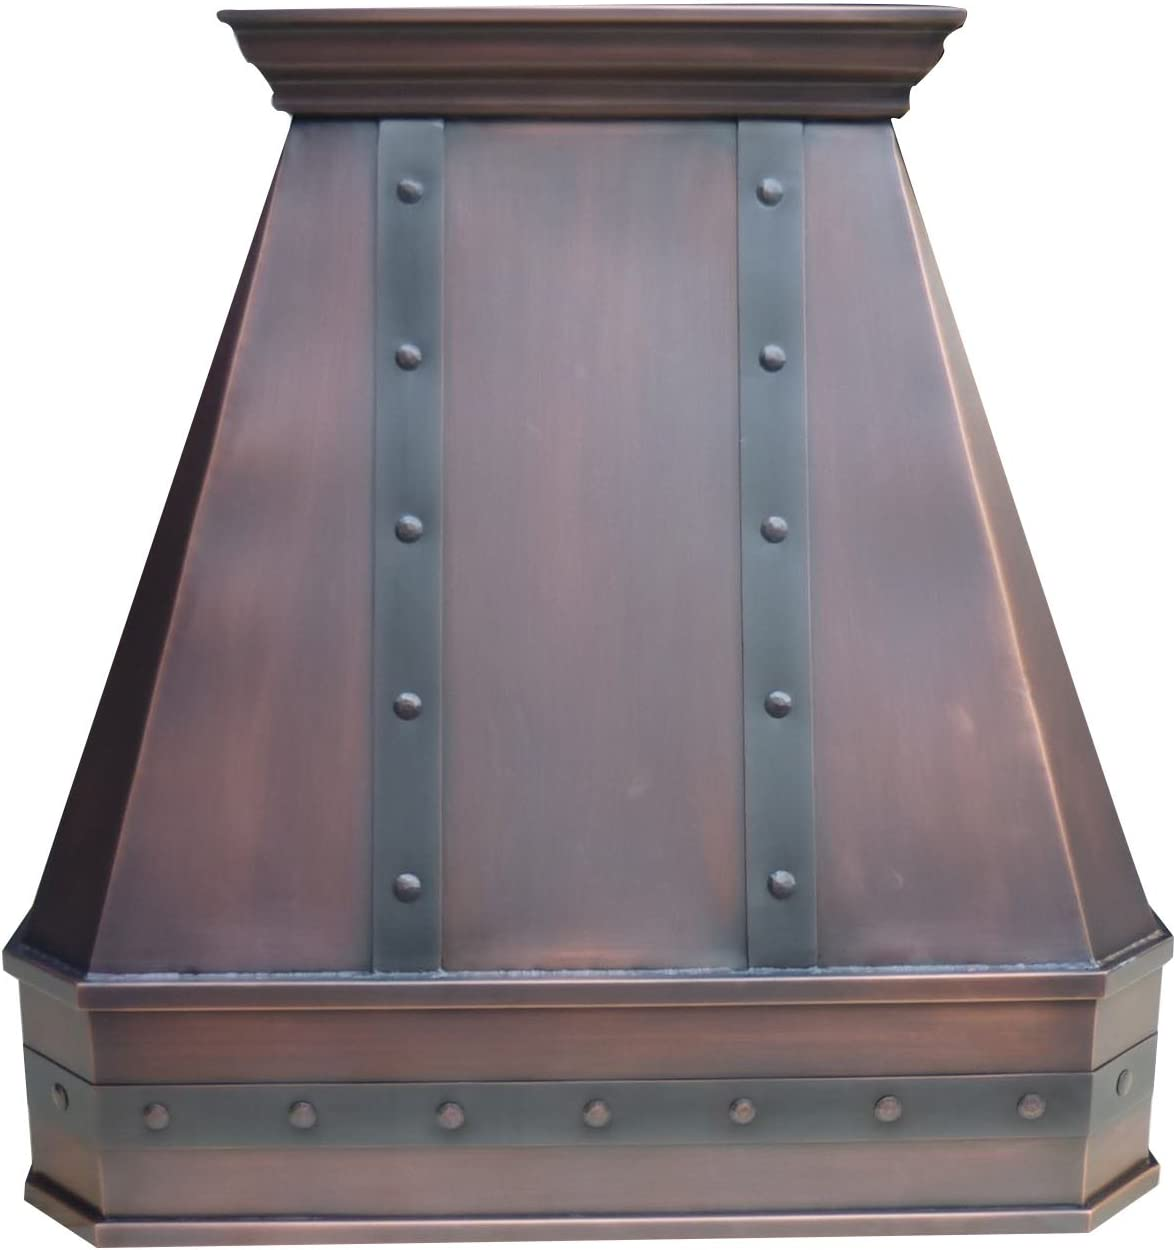 Copper Best H14 482130STR Custom Range Hood Cover with Commercial Grade Stainless Steel Vent, Inlcudes Fan Motor, Light, Blower House and Baffle Filter, Decorative Strips Wall Mount 48in x 30in